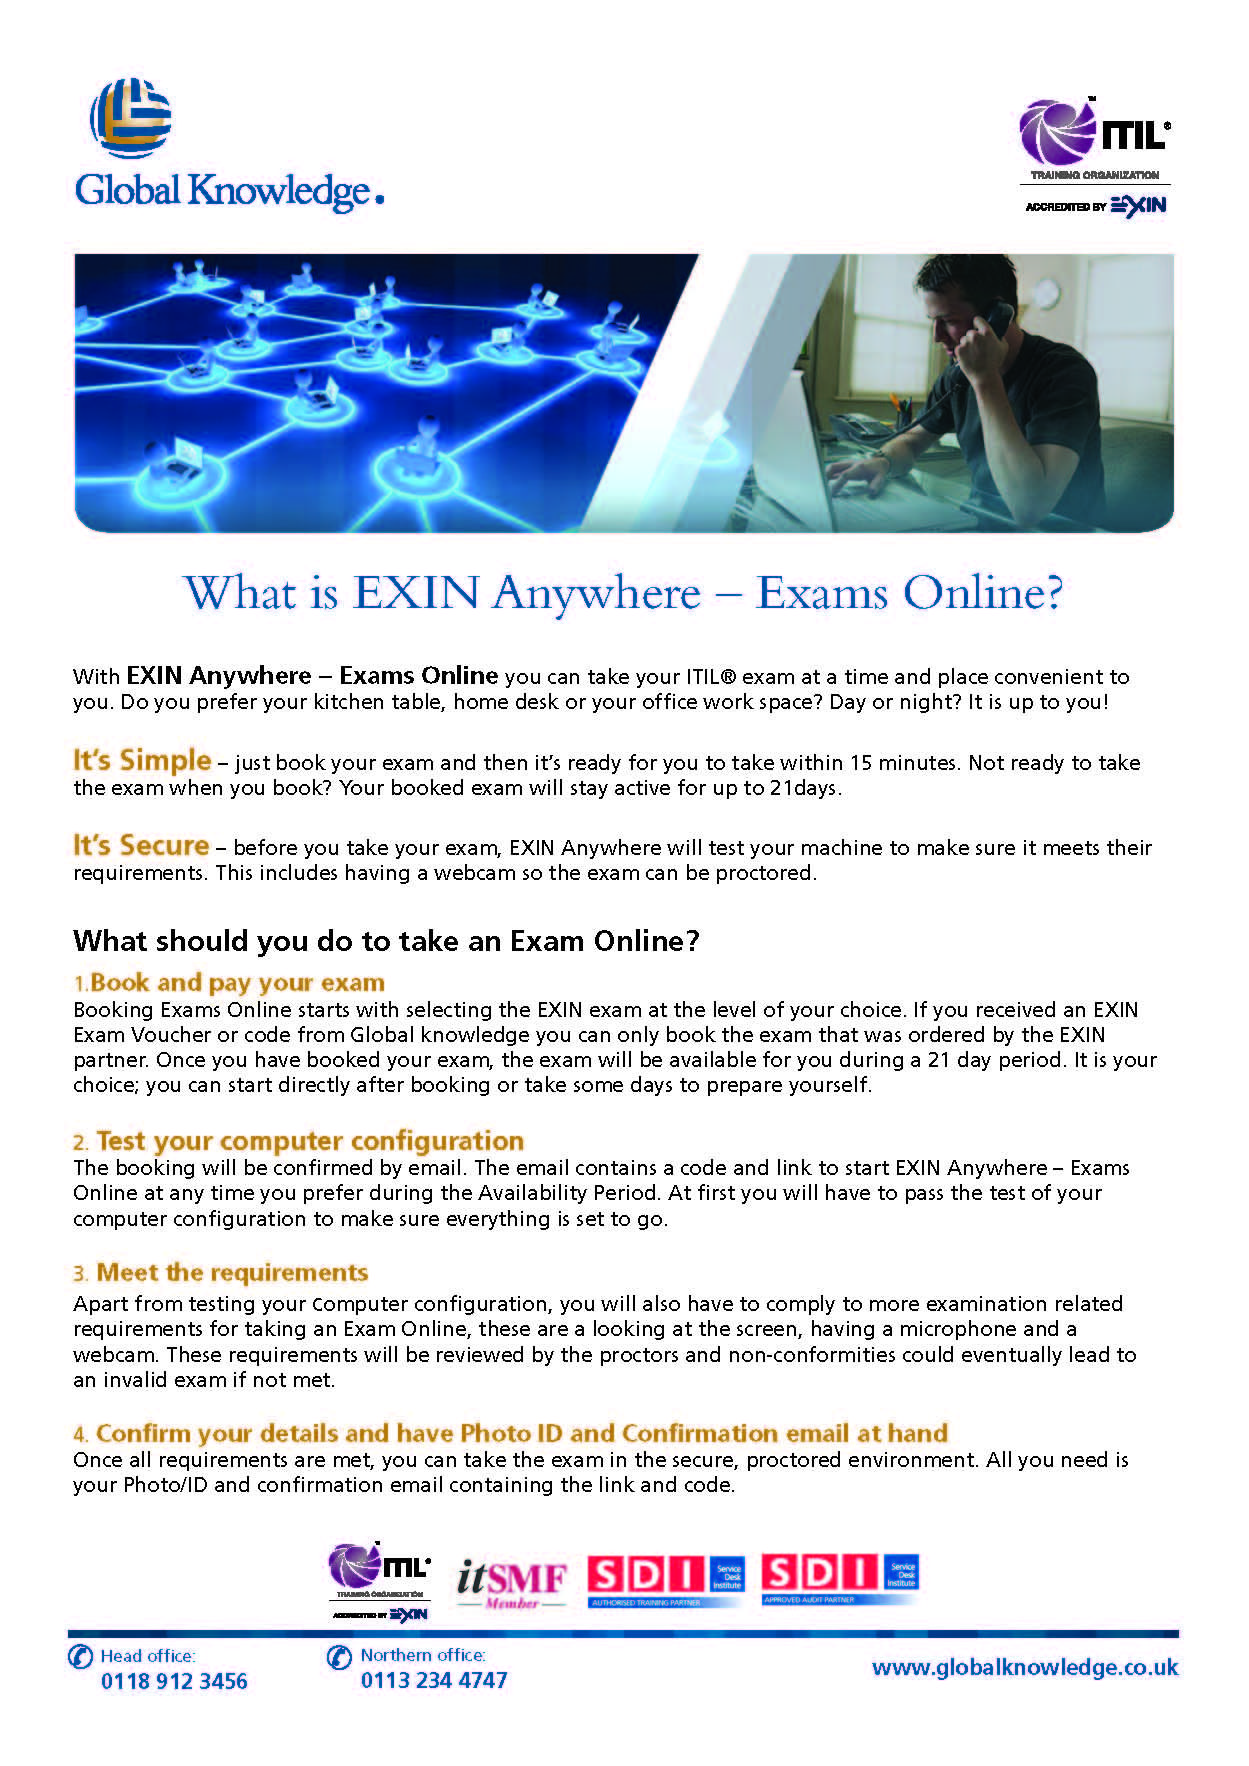 With exin anywhere exams online you can take your itil exam at with exin anywhere exams online you can take your itil exam at a time and place convenient to you do you prefer your kitchen table home desk or your 1betcityfo Image collections